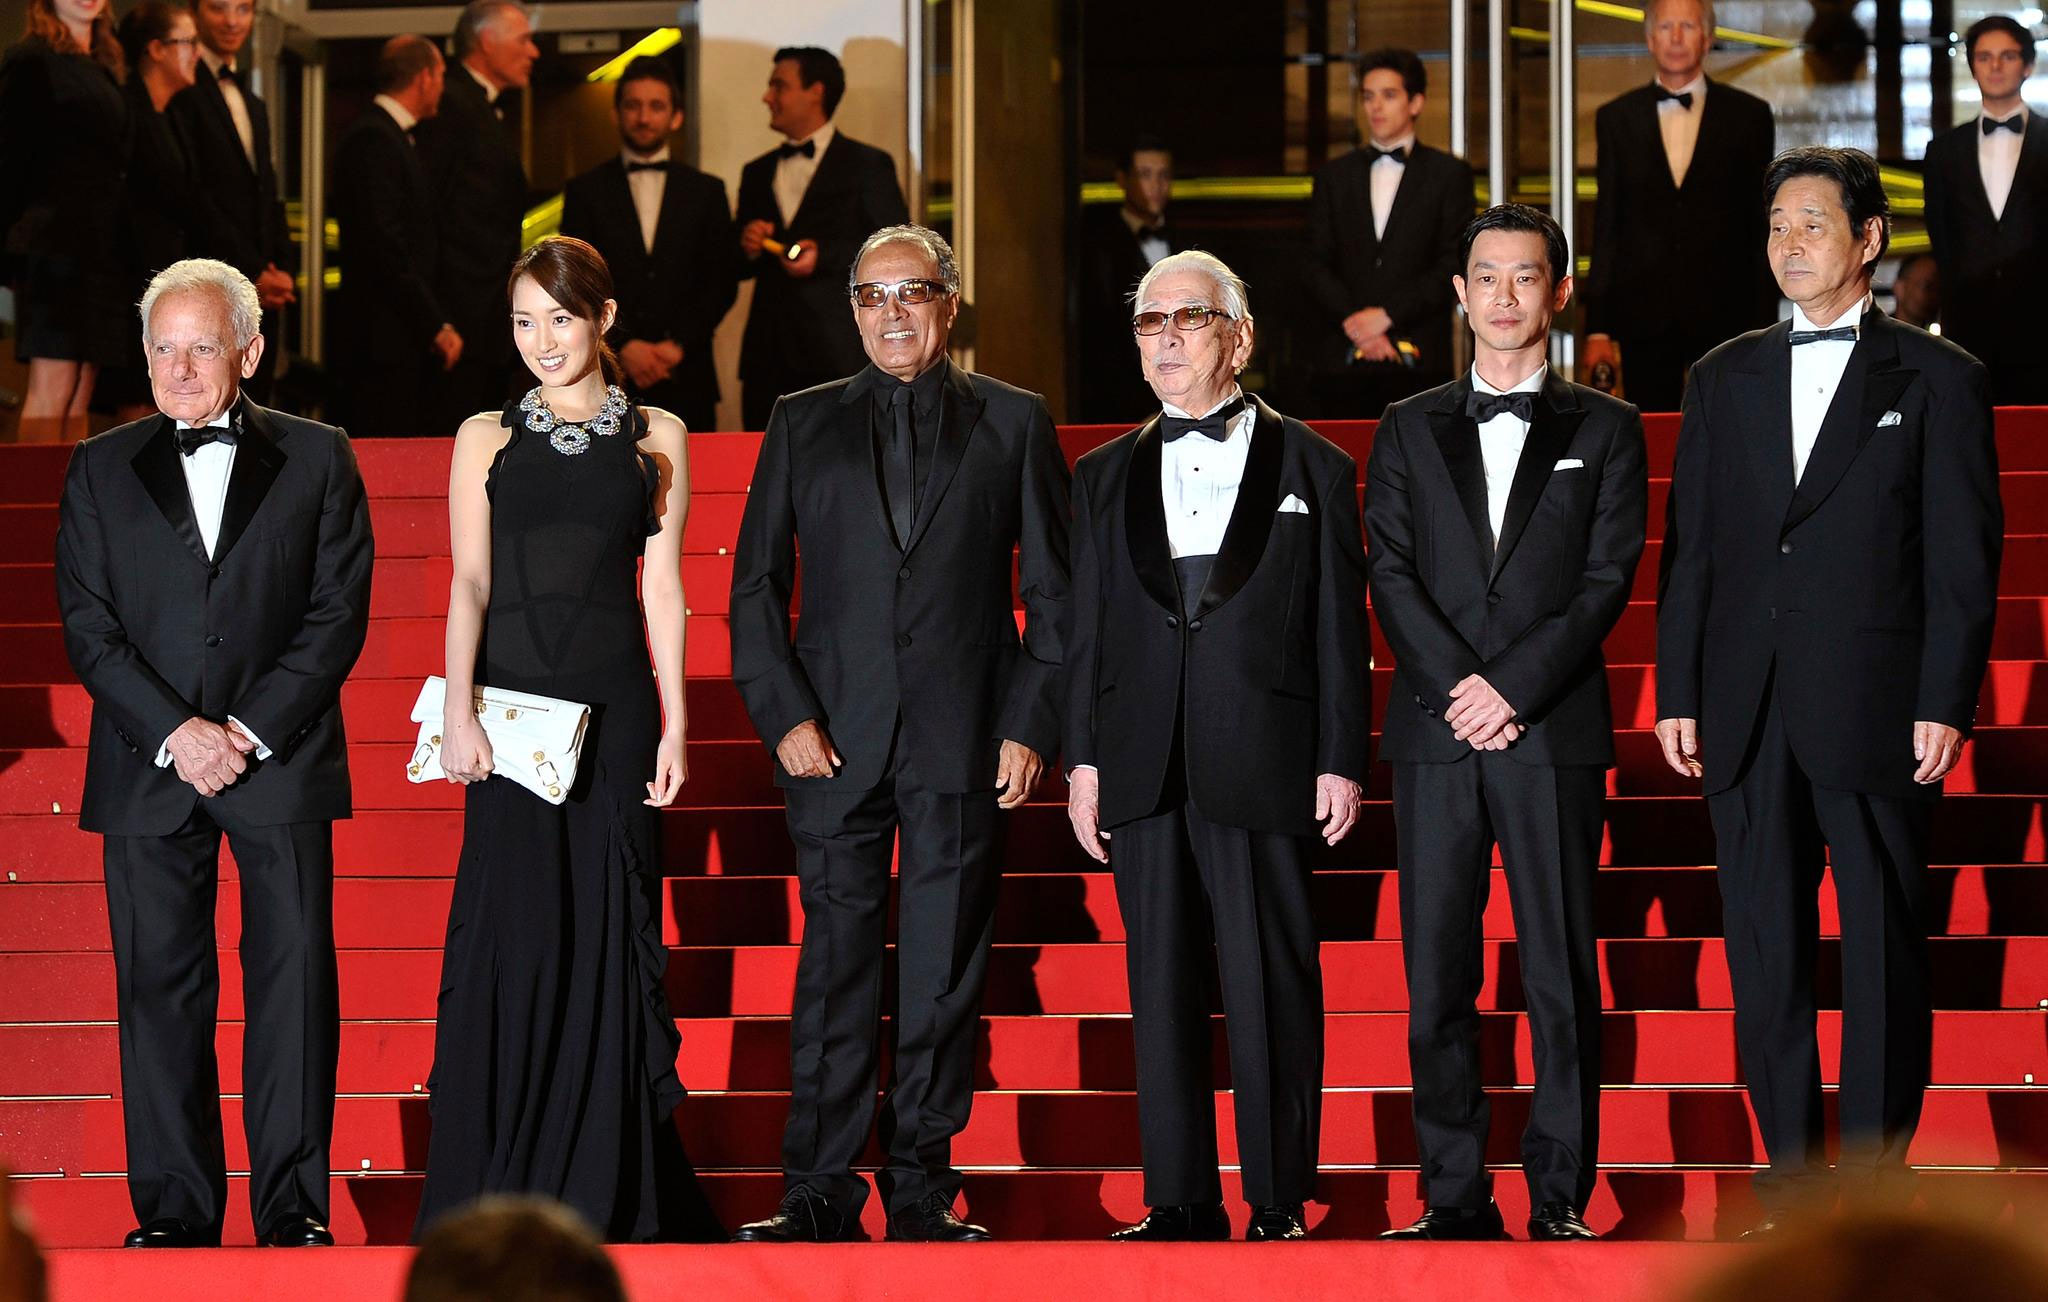 Like Someone In Love 2012 >> Pin Marin Karmitz, Abbas Kiarostami, Ryô Kase, Tadashi Okuno, and Rin Takanashi